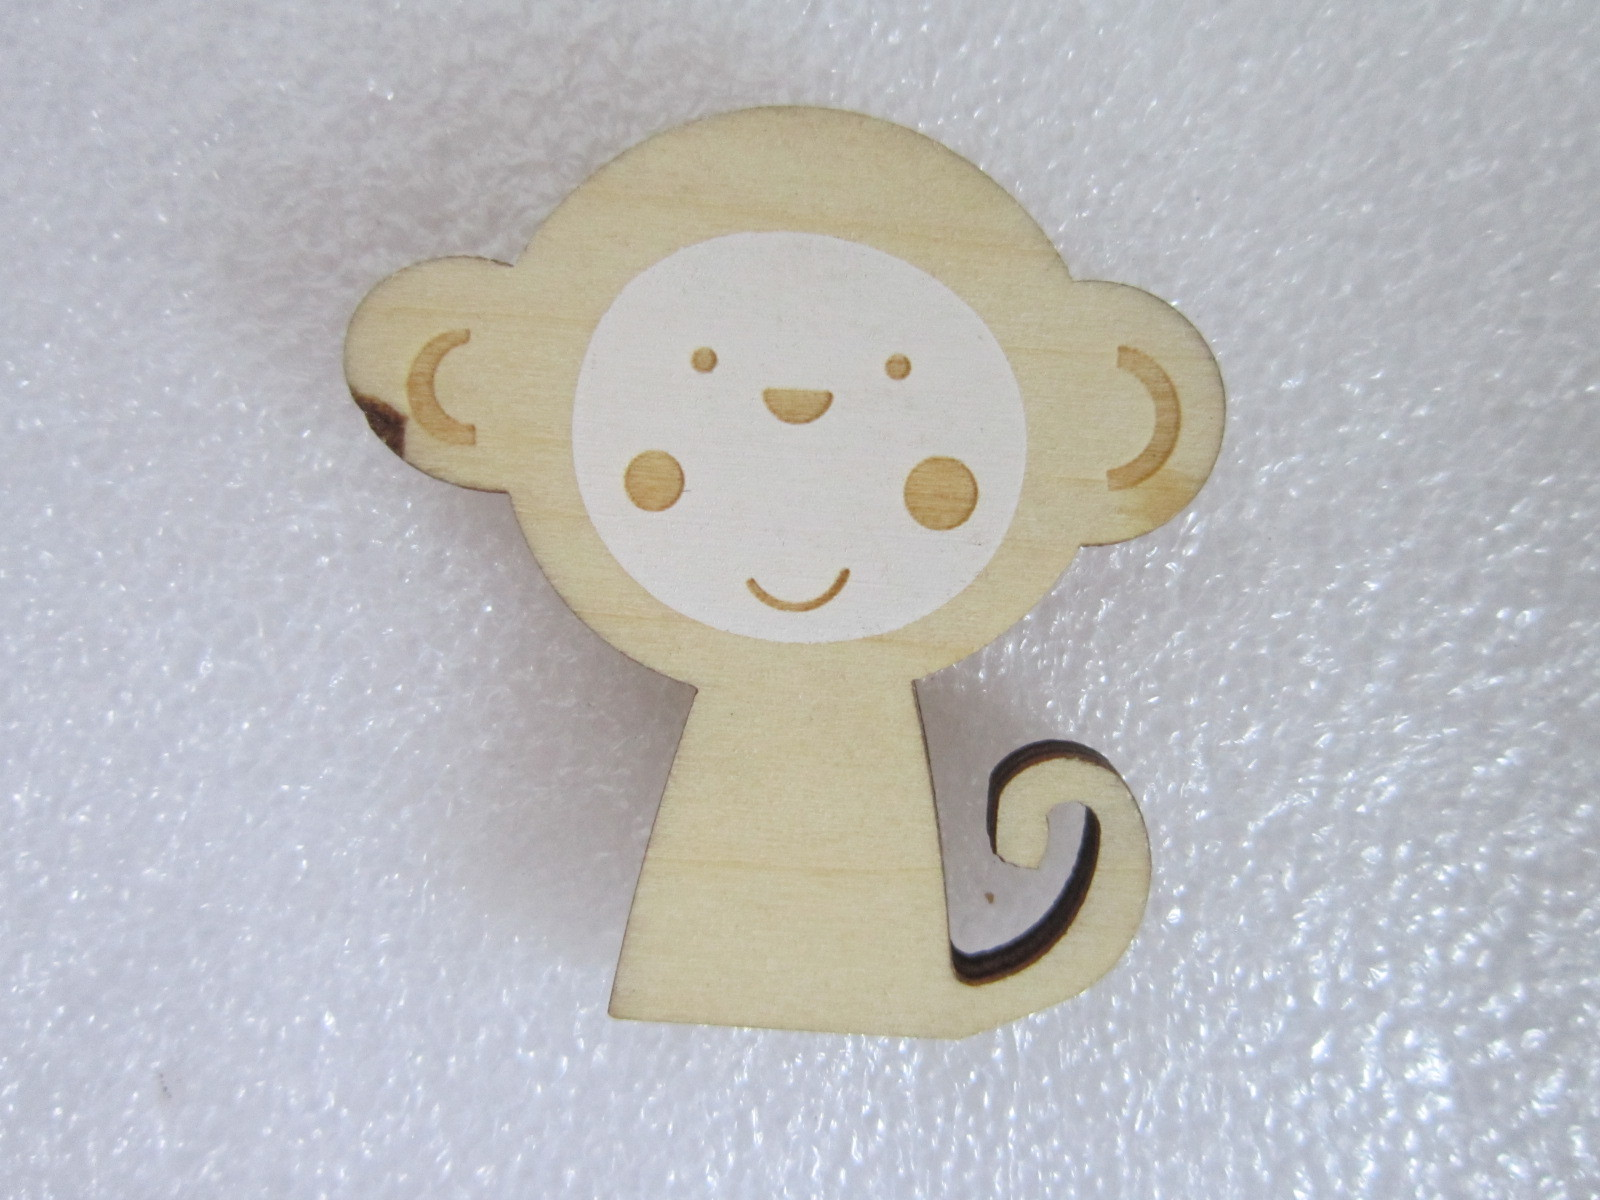 Small Monkey laser cutting, engraving and color printing